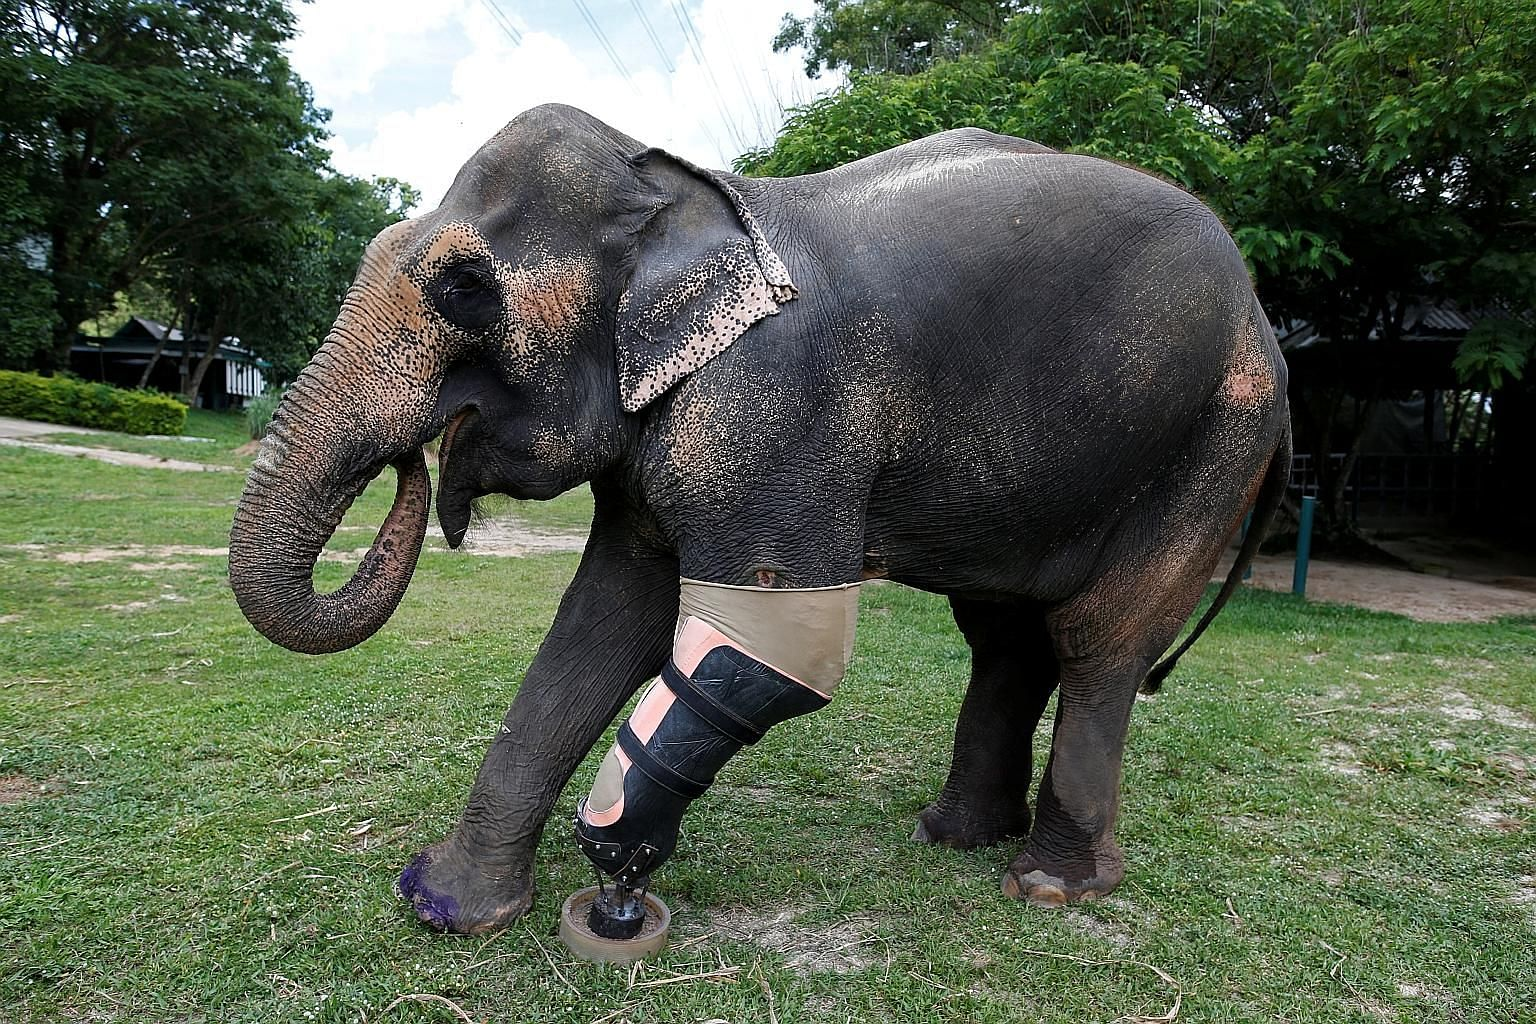 Motala, an elephant that was injured by a landmine, with its prosthetic leg, courtesy of Friends of the Asian Elephant Foundation in Lampang, Thailand.